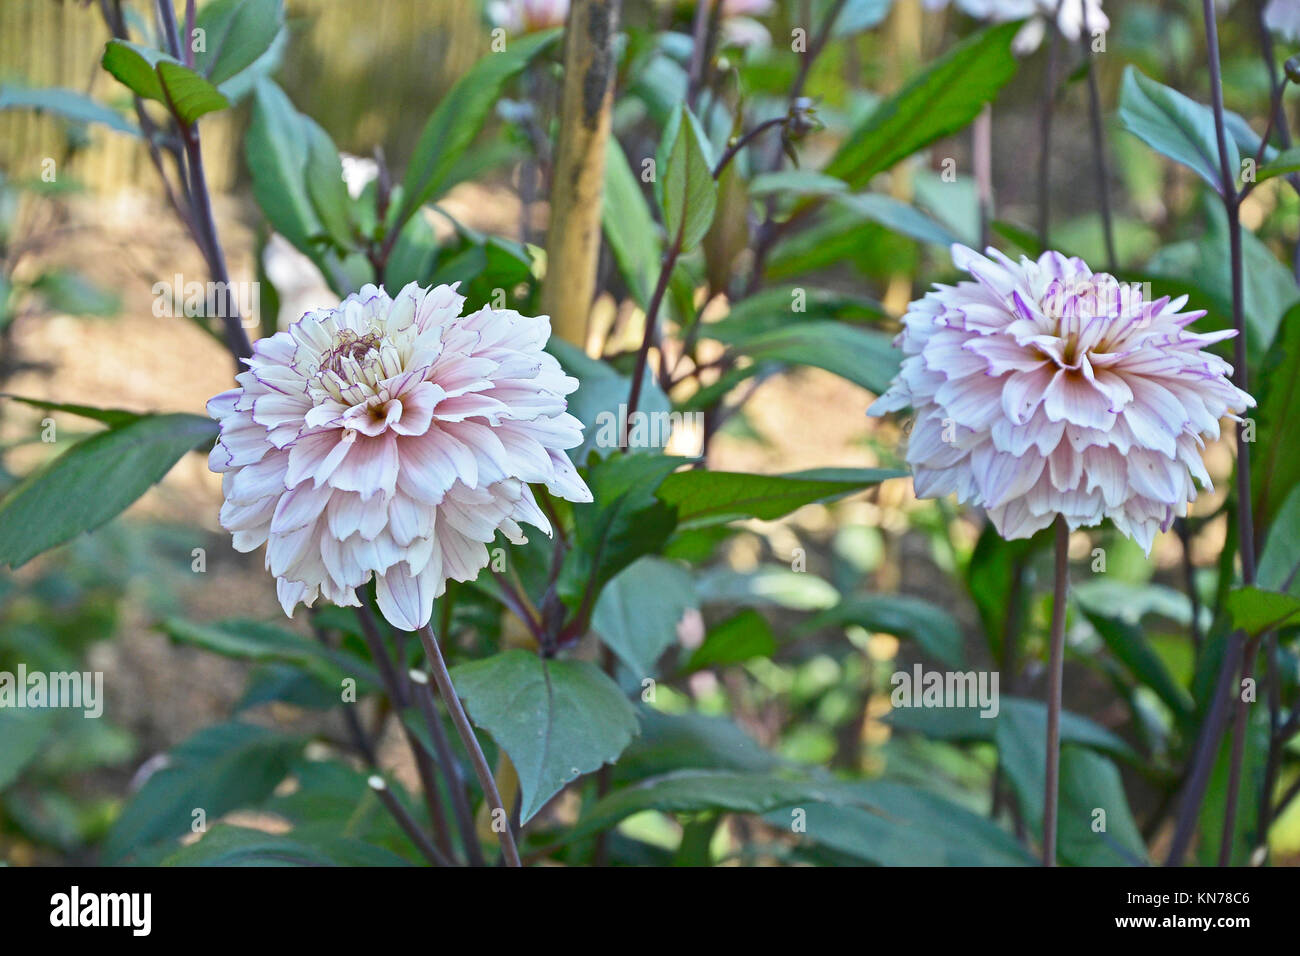 Flashback Stock Photos Images Alamy Wiring Diagram Flowering Dahlia In A Garden Border Image